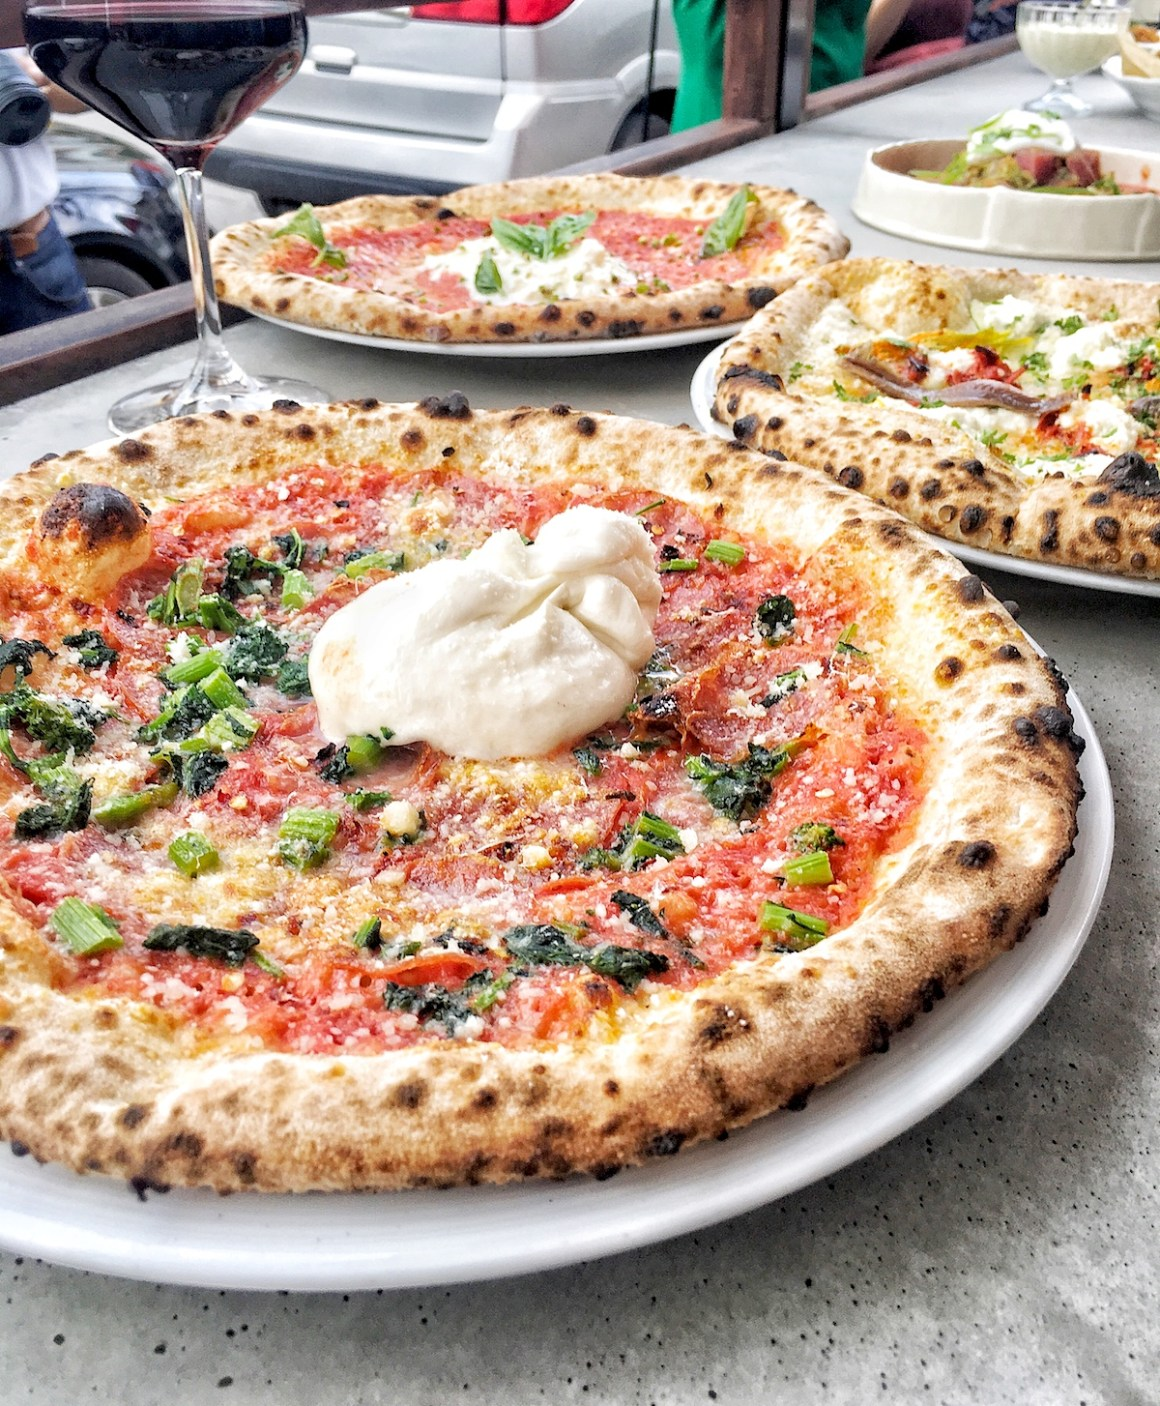 Noce Restaurant Toronto - Food Pizza Italian | View the VIBE